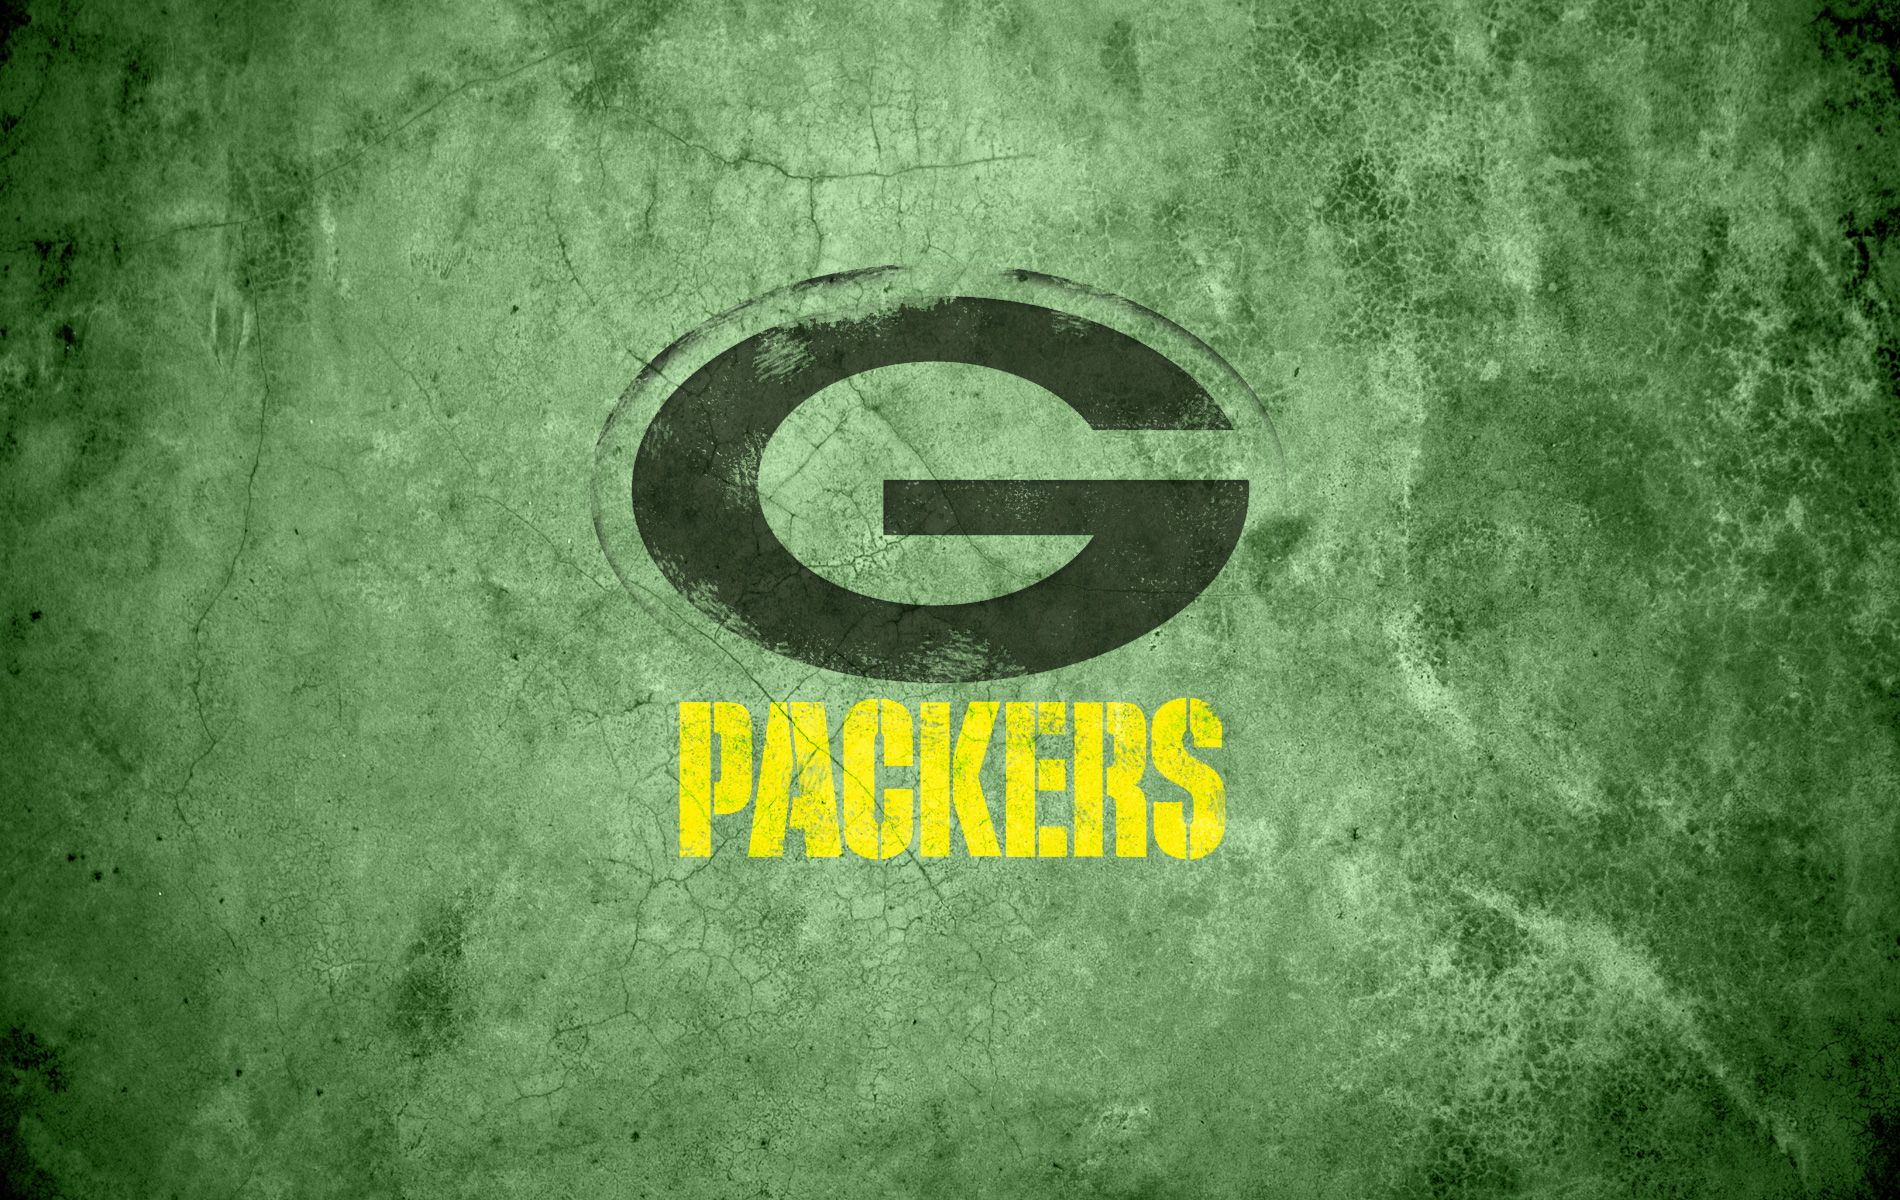 Green Bay Packers Wallpaper Green Bay Packers 35376434 1900 1200 Jpg 1900 1200 Green Bay Packers Wallpaper Packers Green Bay Packers